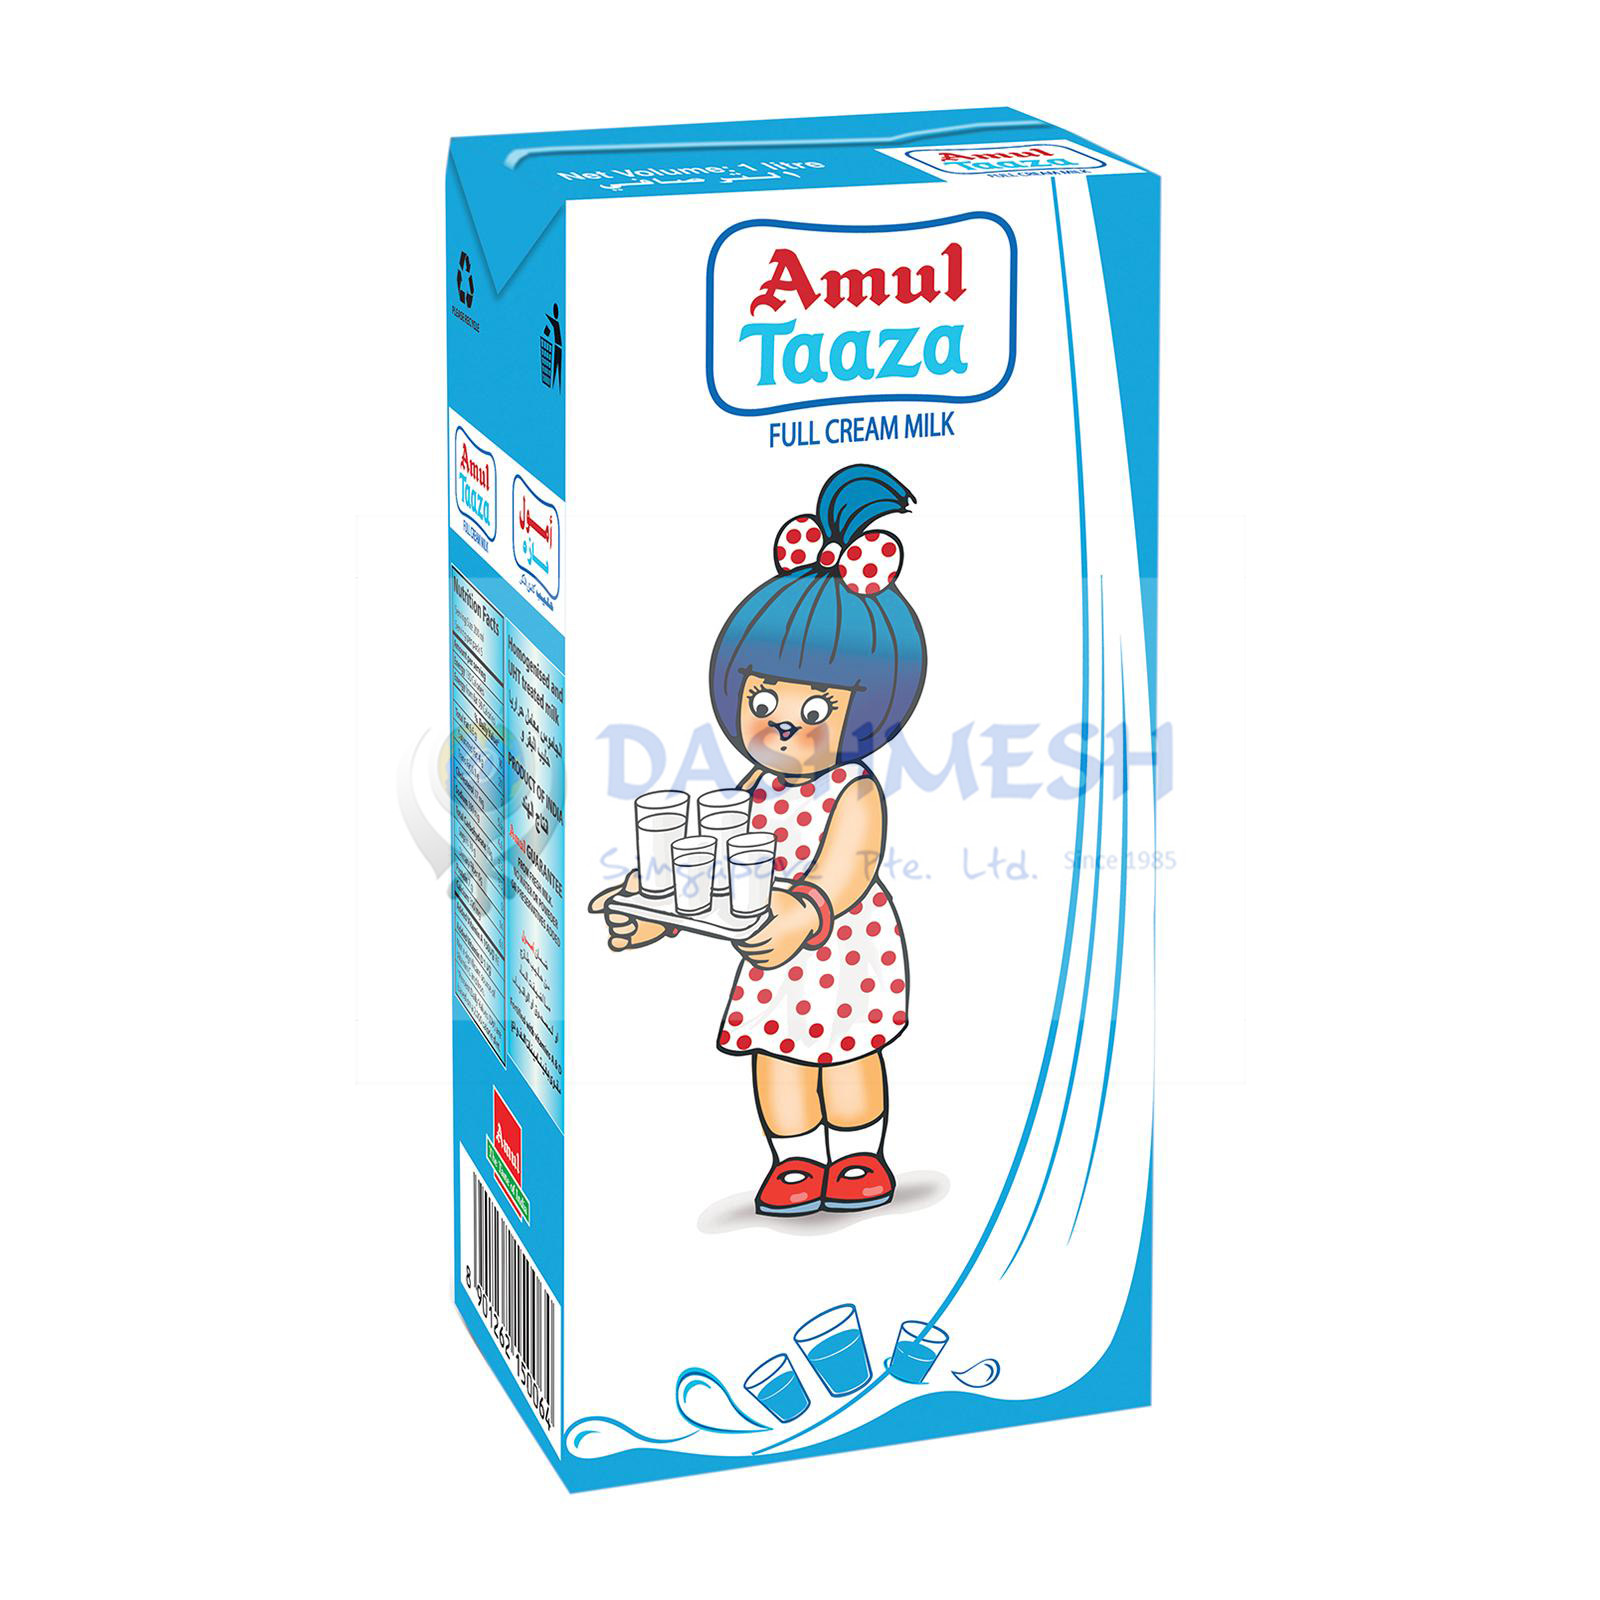 Amul Taaza UHT Full Cream Milk 1 ltr & 12 x 1 ltr (Carton)